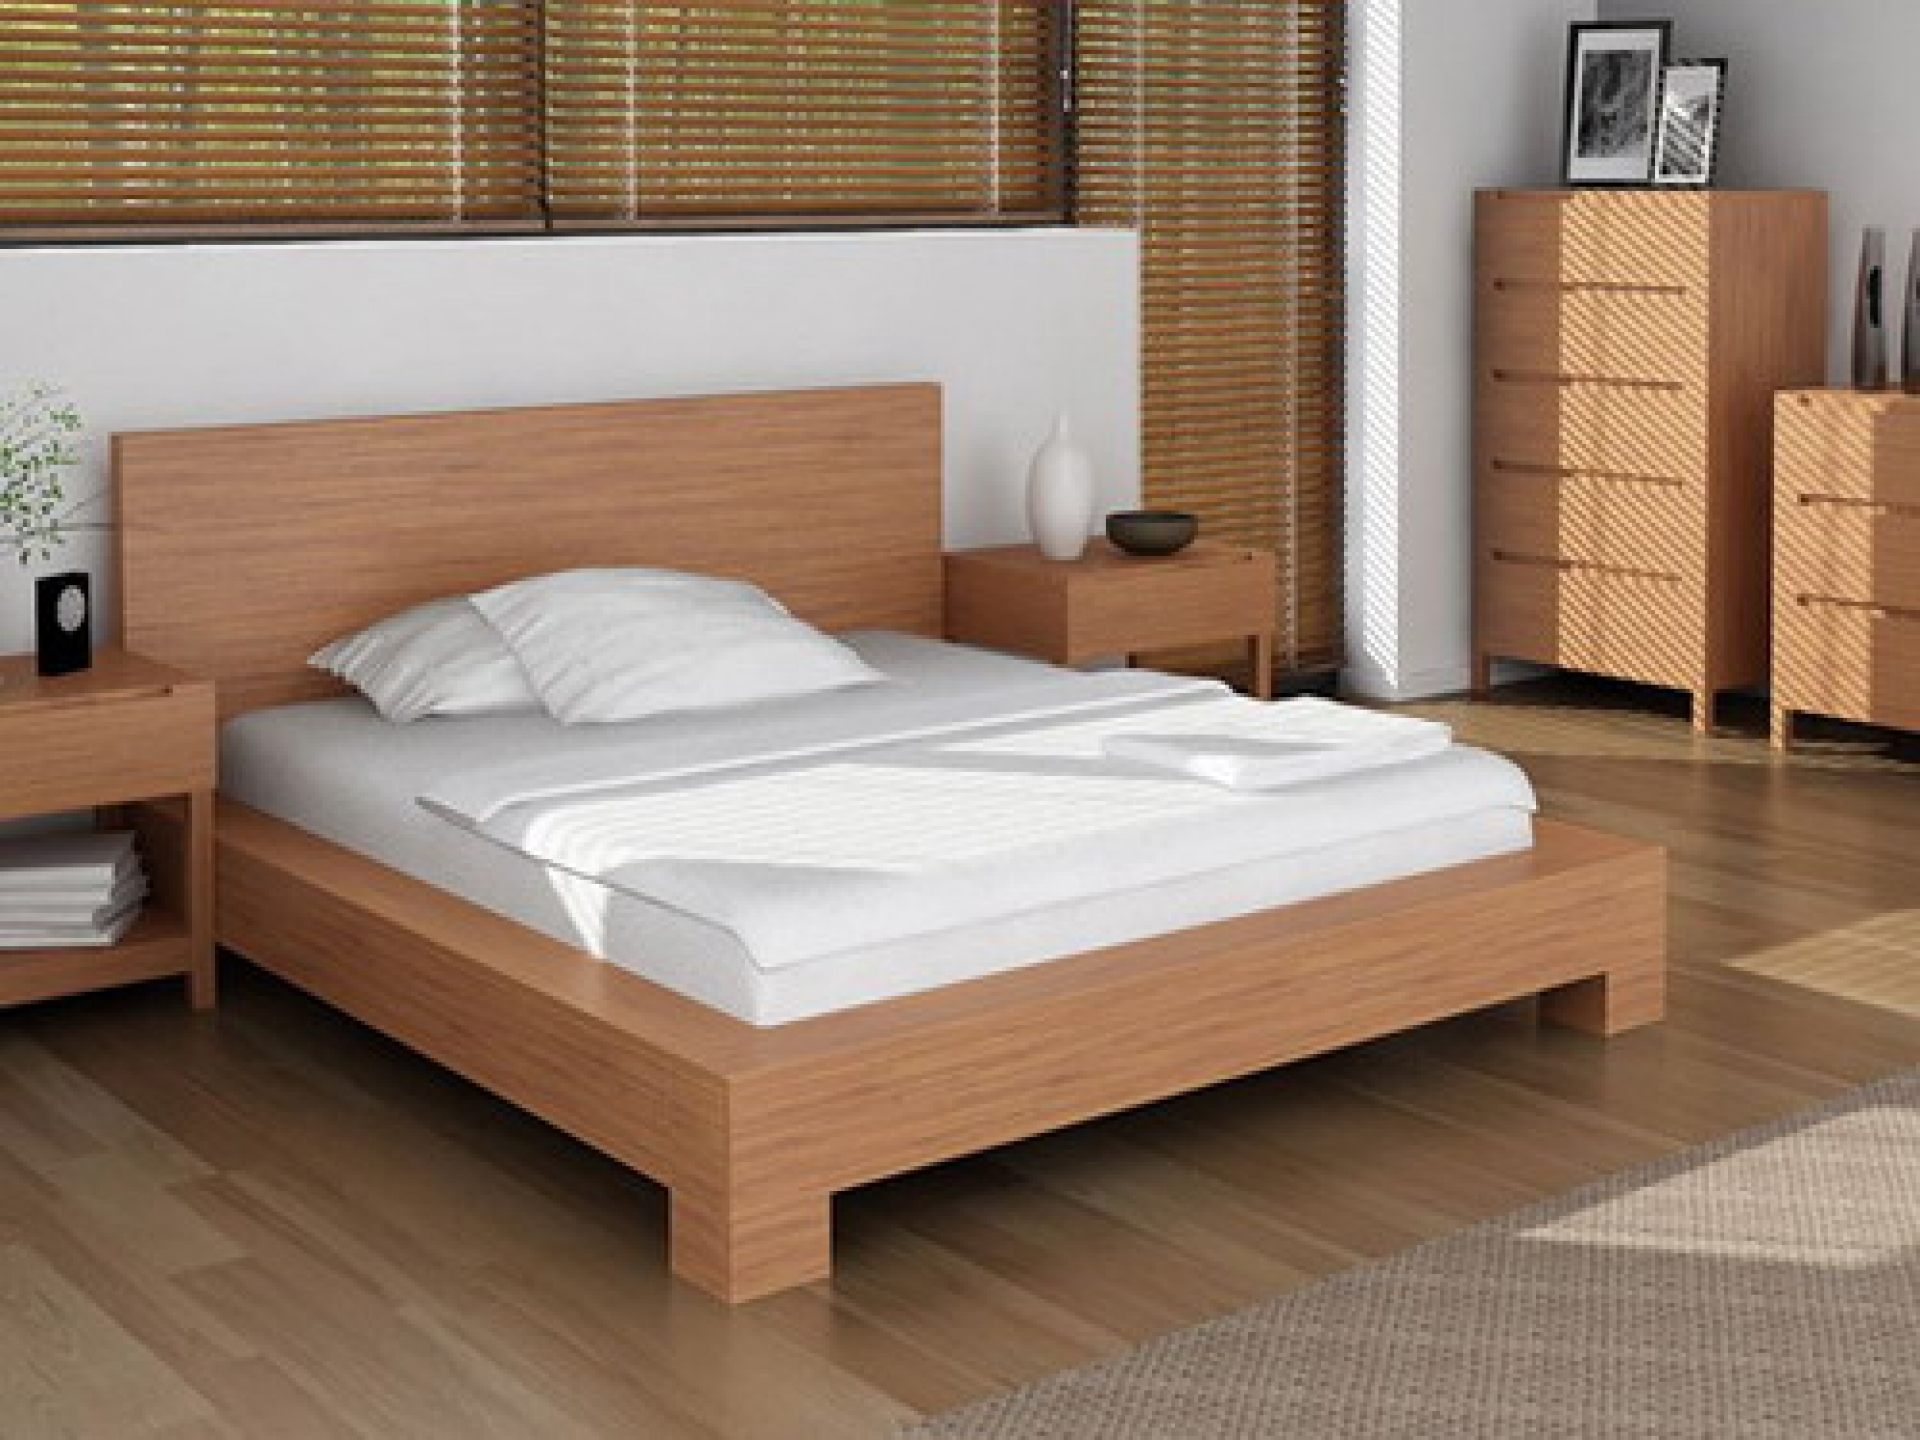 Simple wood bed frame ideas homesfeed for Simple bed diy